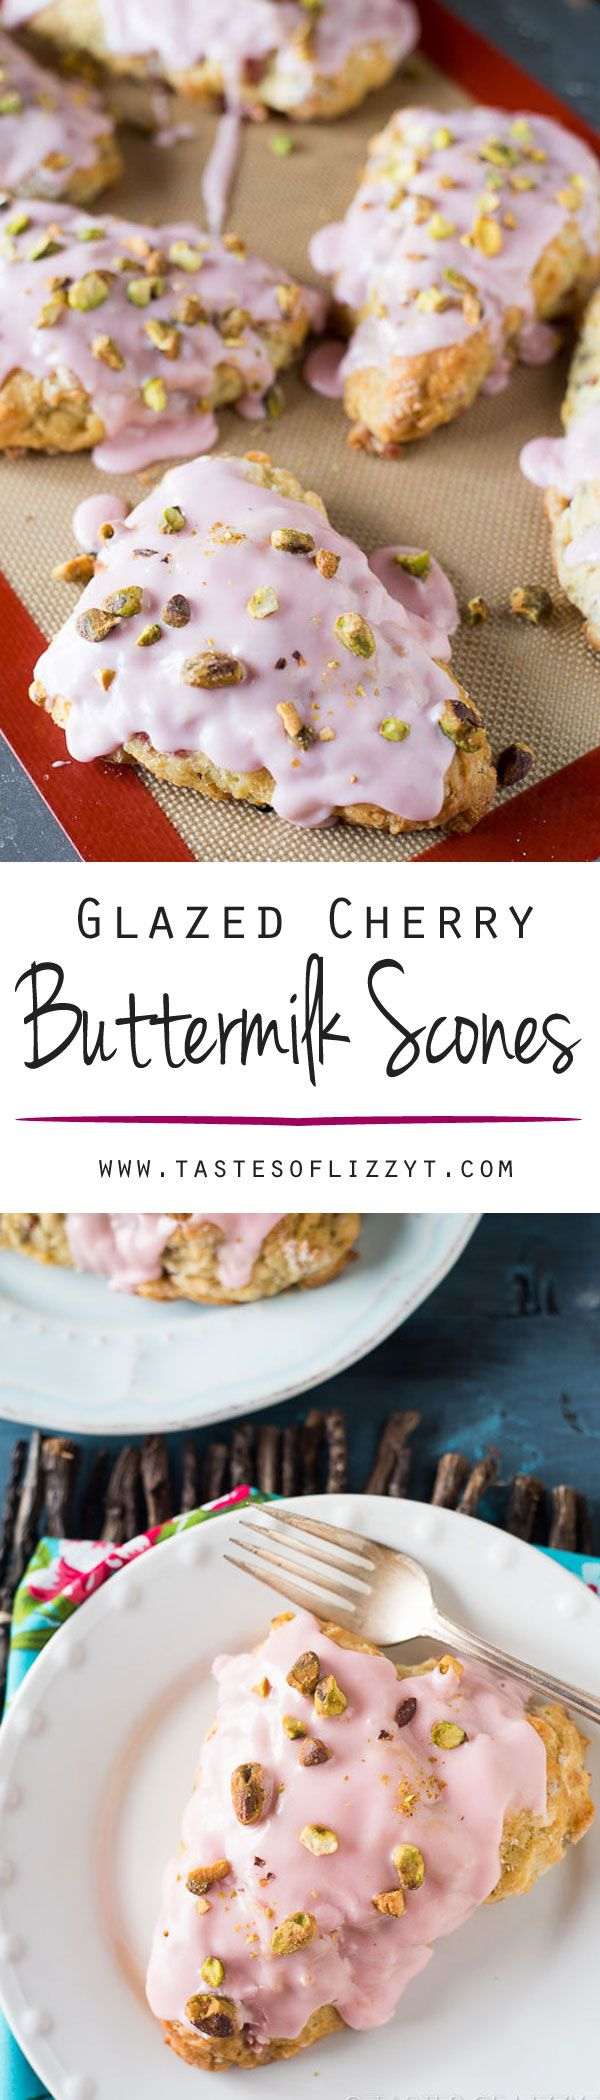 Glazed Cherry Buttermilk Scones. Learn how to make light, buttery, buttermilk scones. These glazed cherry buttermilk scones are topped with salty pistachio nuts.